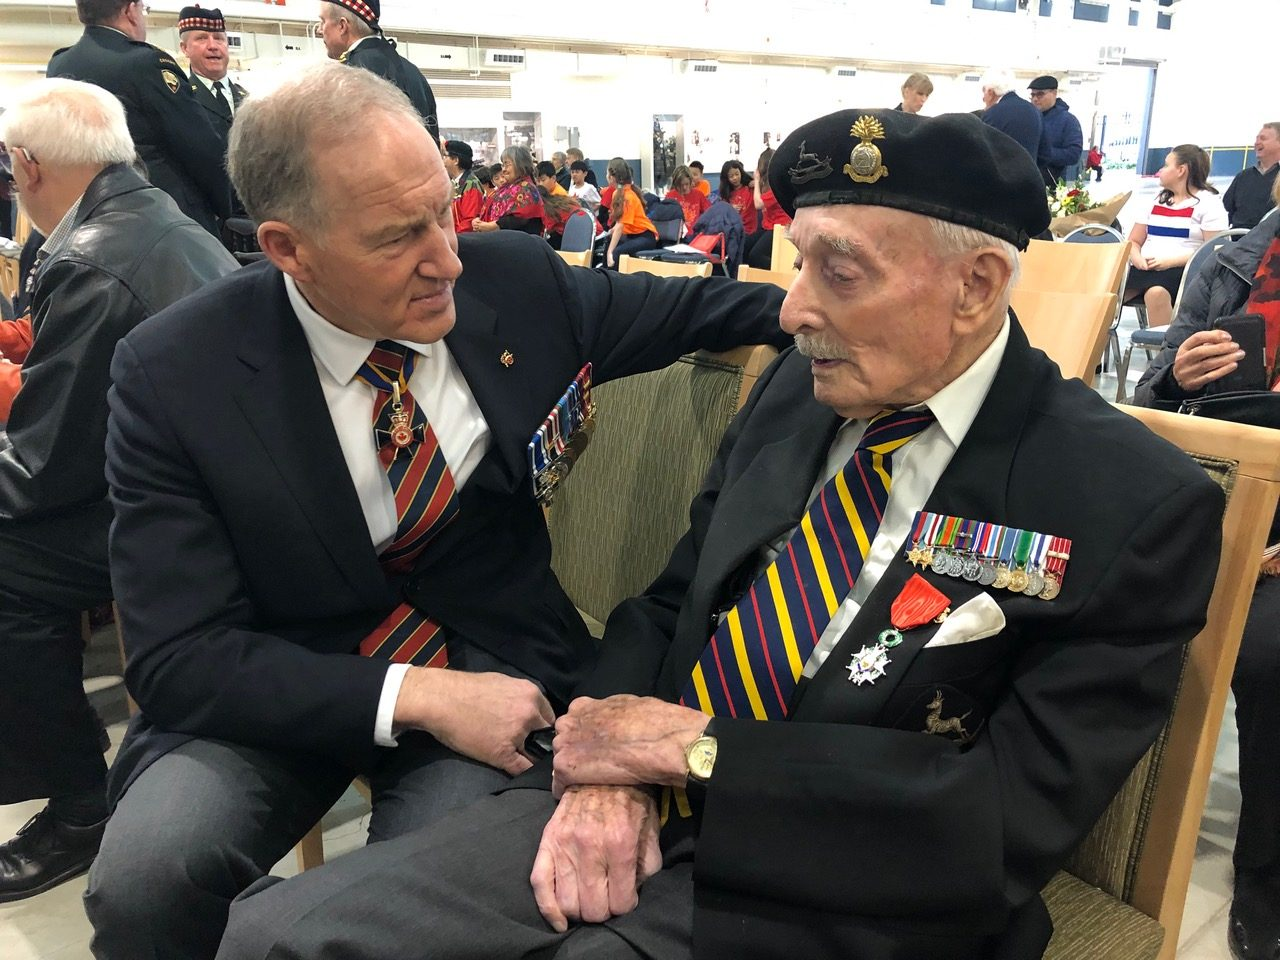 General Walt Natynczyk, Deputy Minister, Veterans Affairs, Government of Canada speaks with World War 2 Veteran Frank Milledge of the Sherbrooke Fusiliers